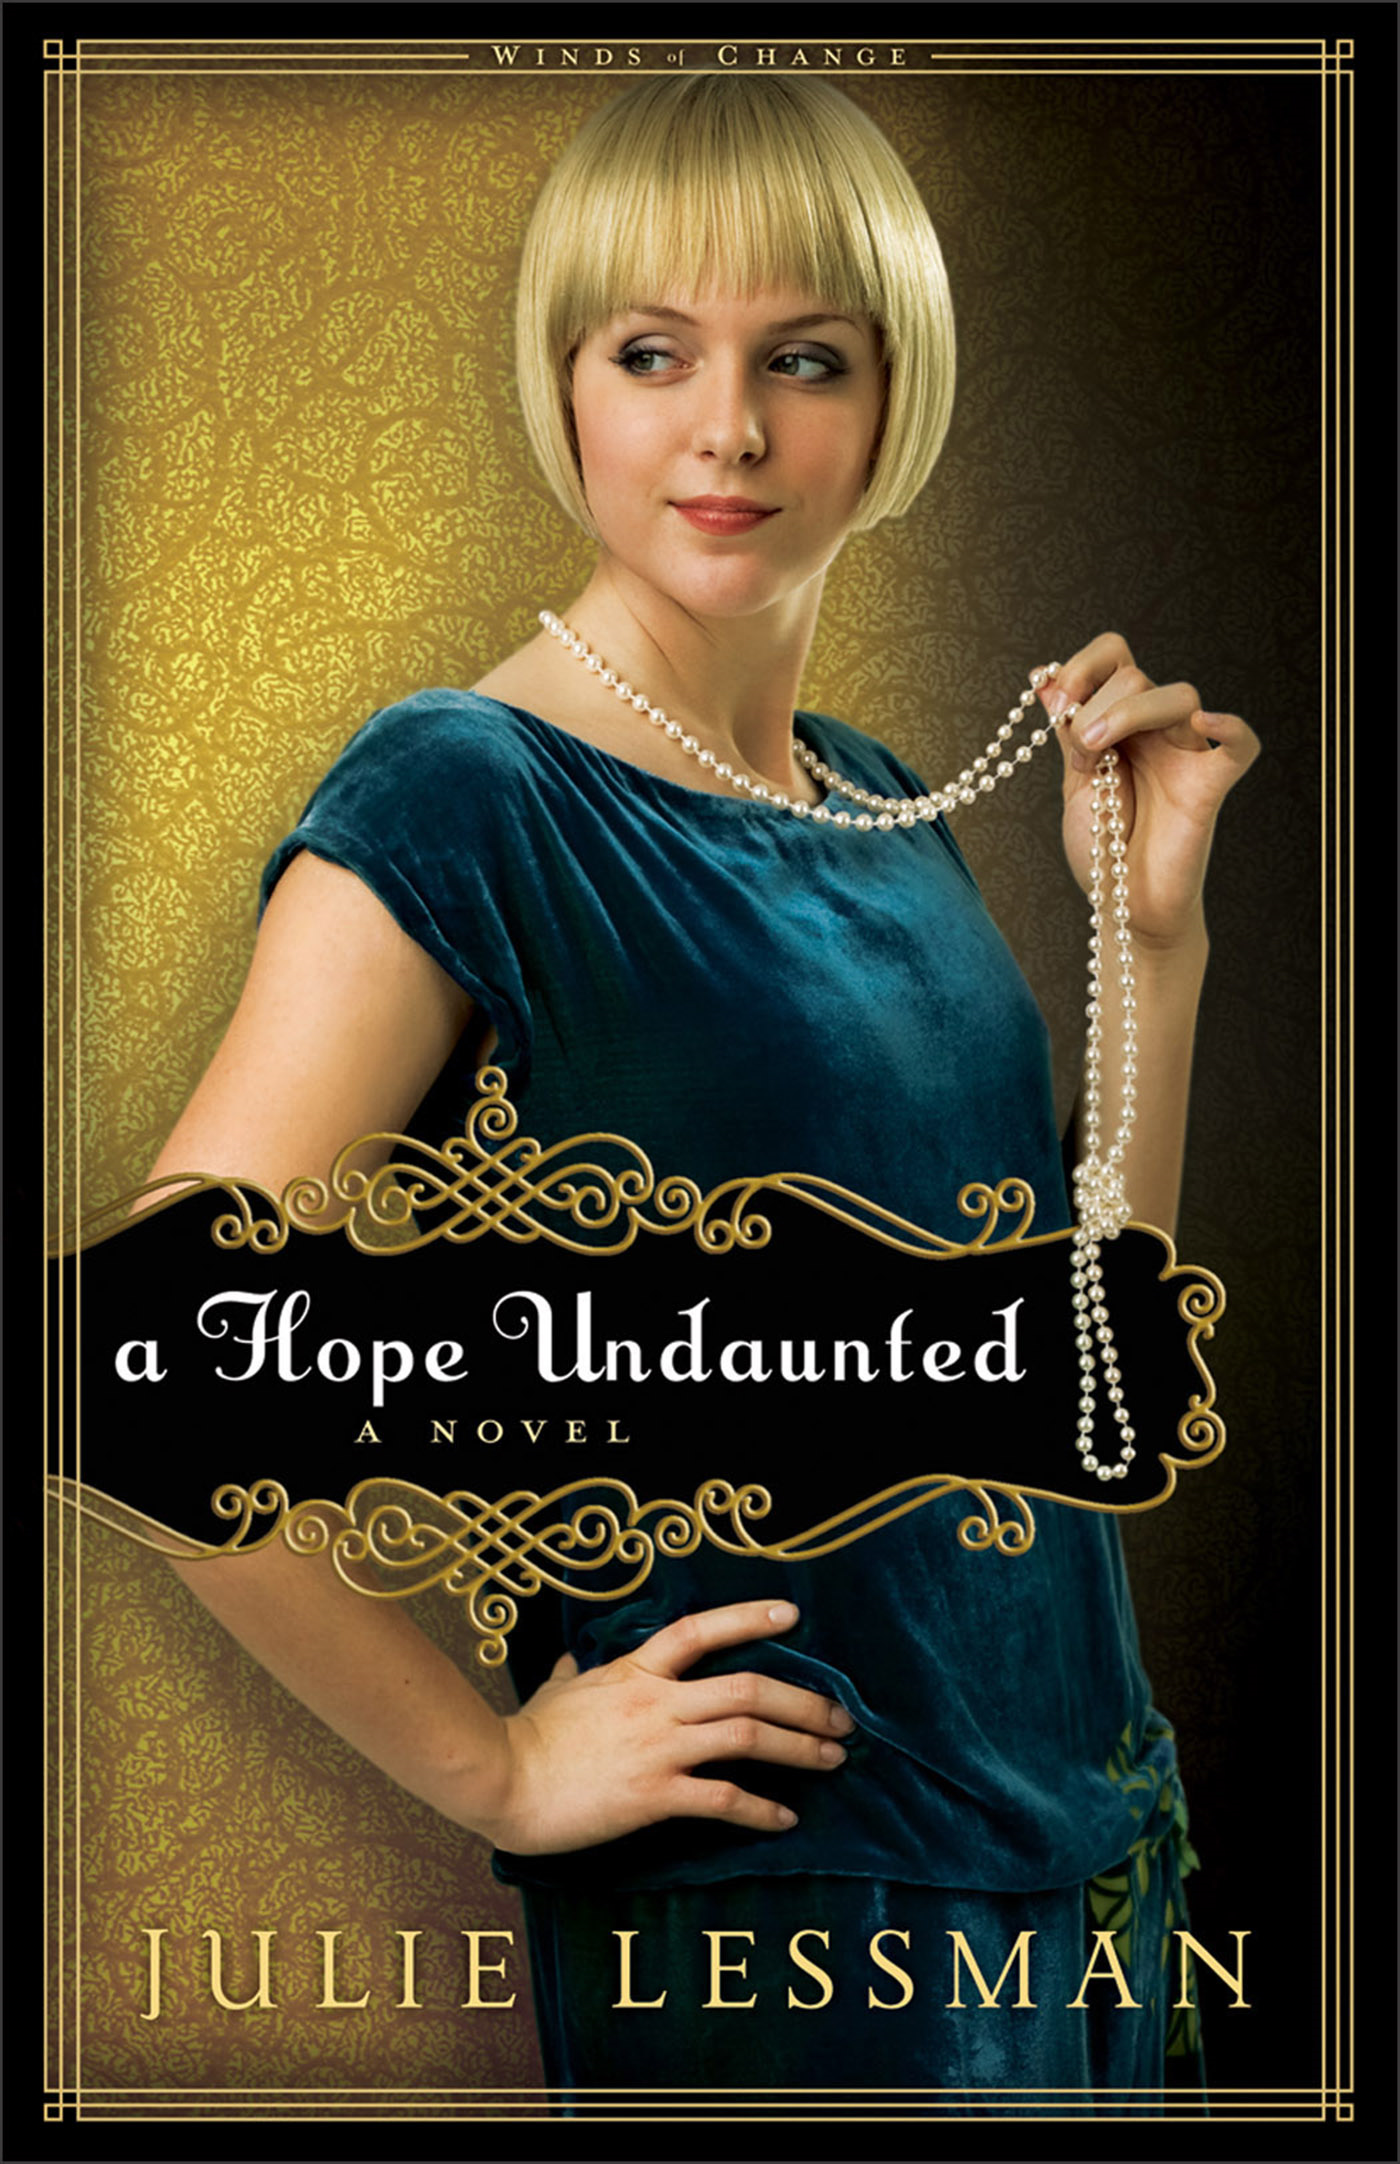 Hope Undaunted, A (Winds of Change Book #1) By: Julie Lessman